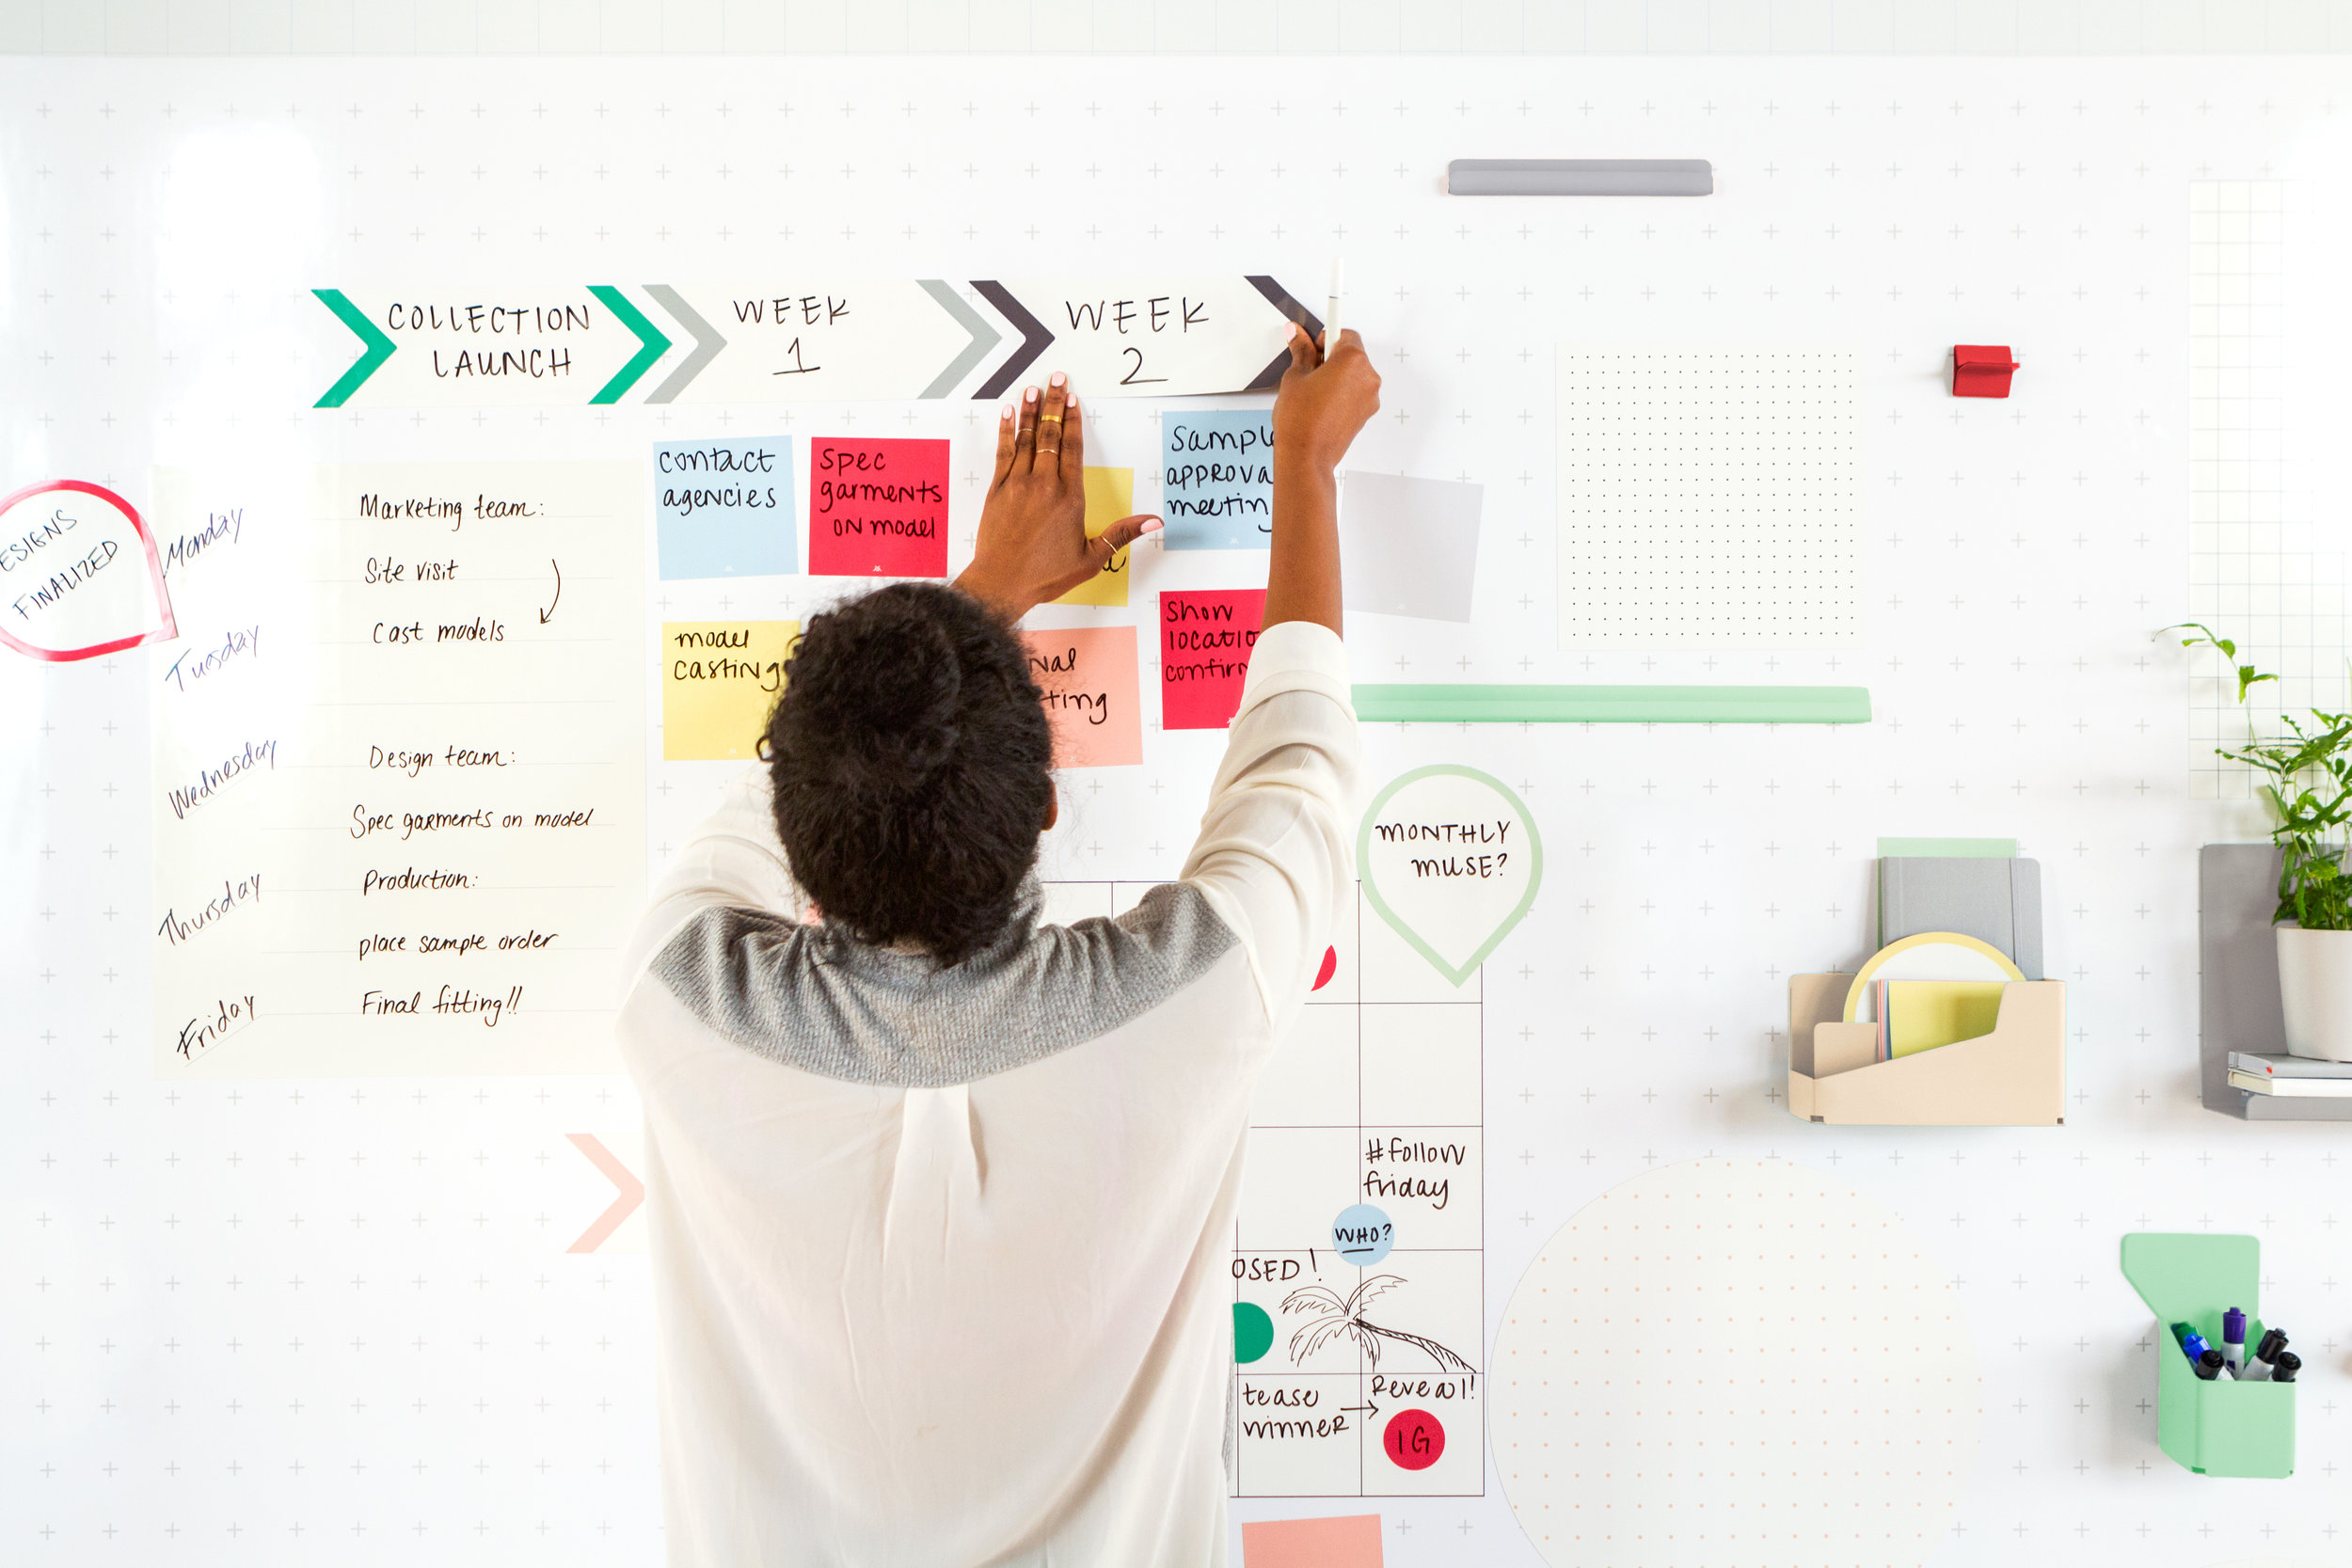 dry erase - VIEW COLLECTIONThe world's most innovative and durable dry erase wall coverings that foster collaboration™ and never ghost.